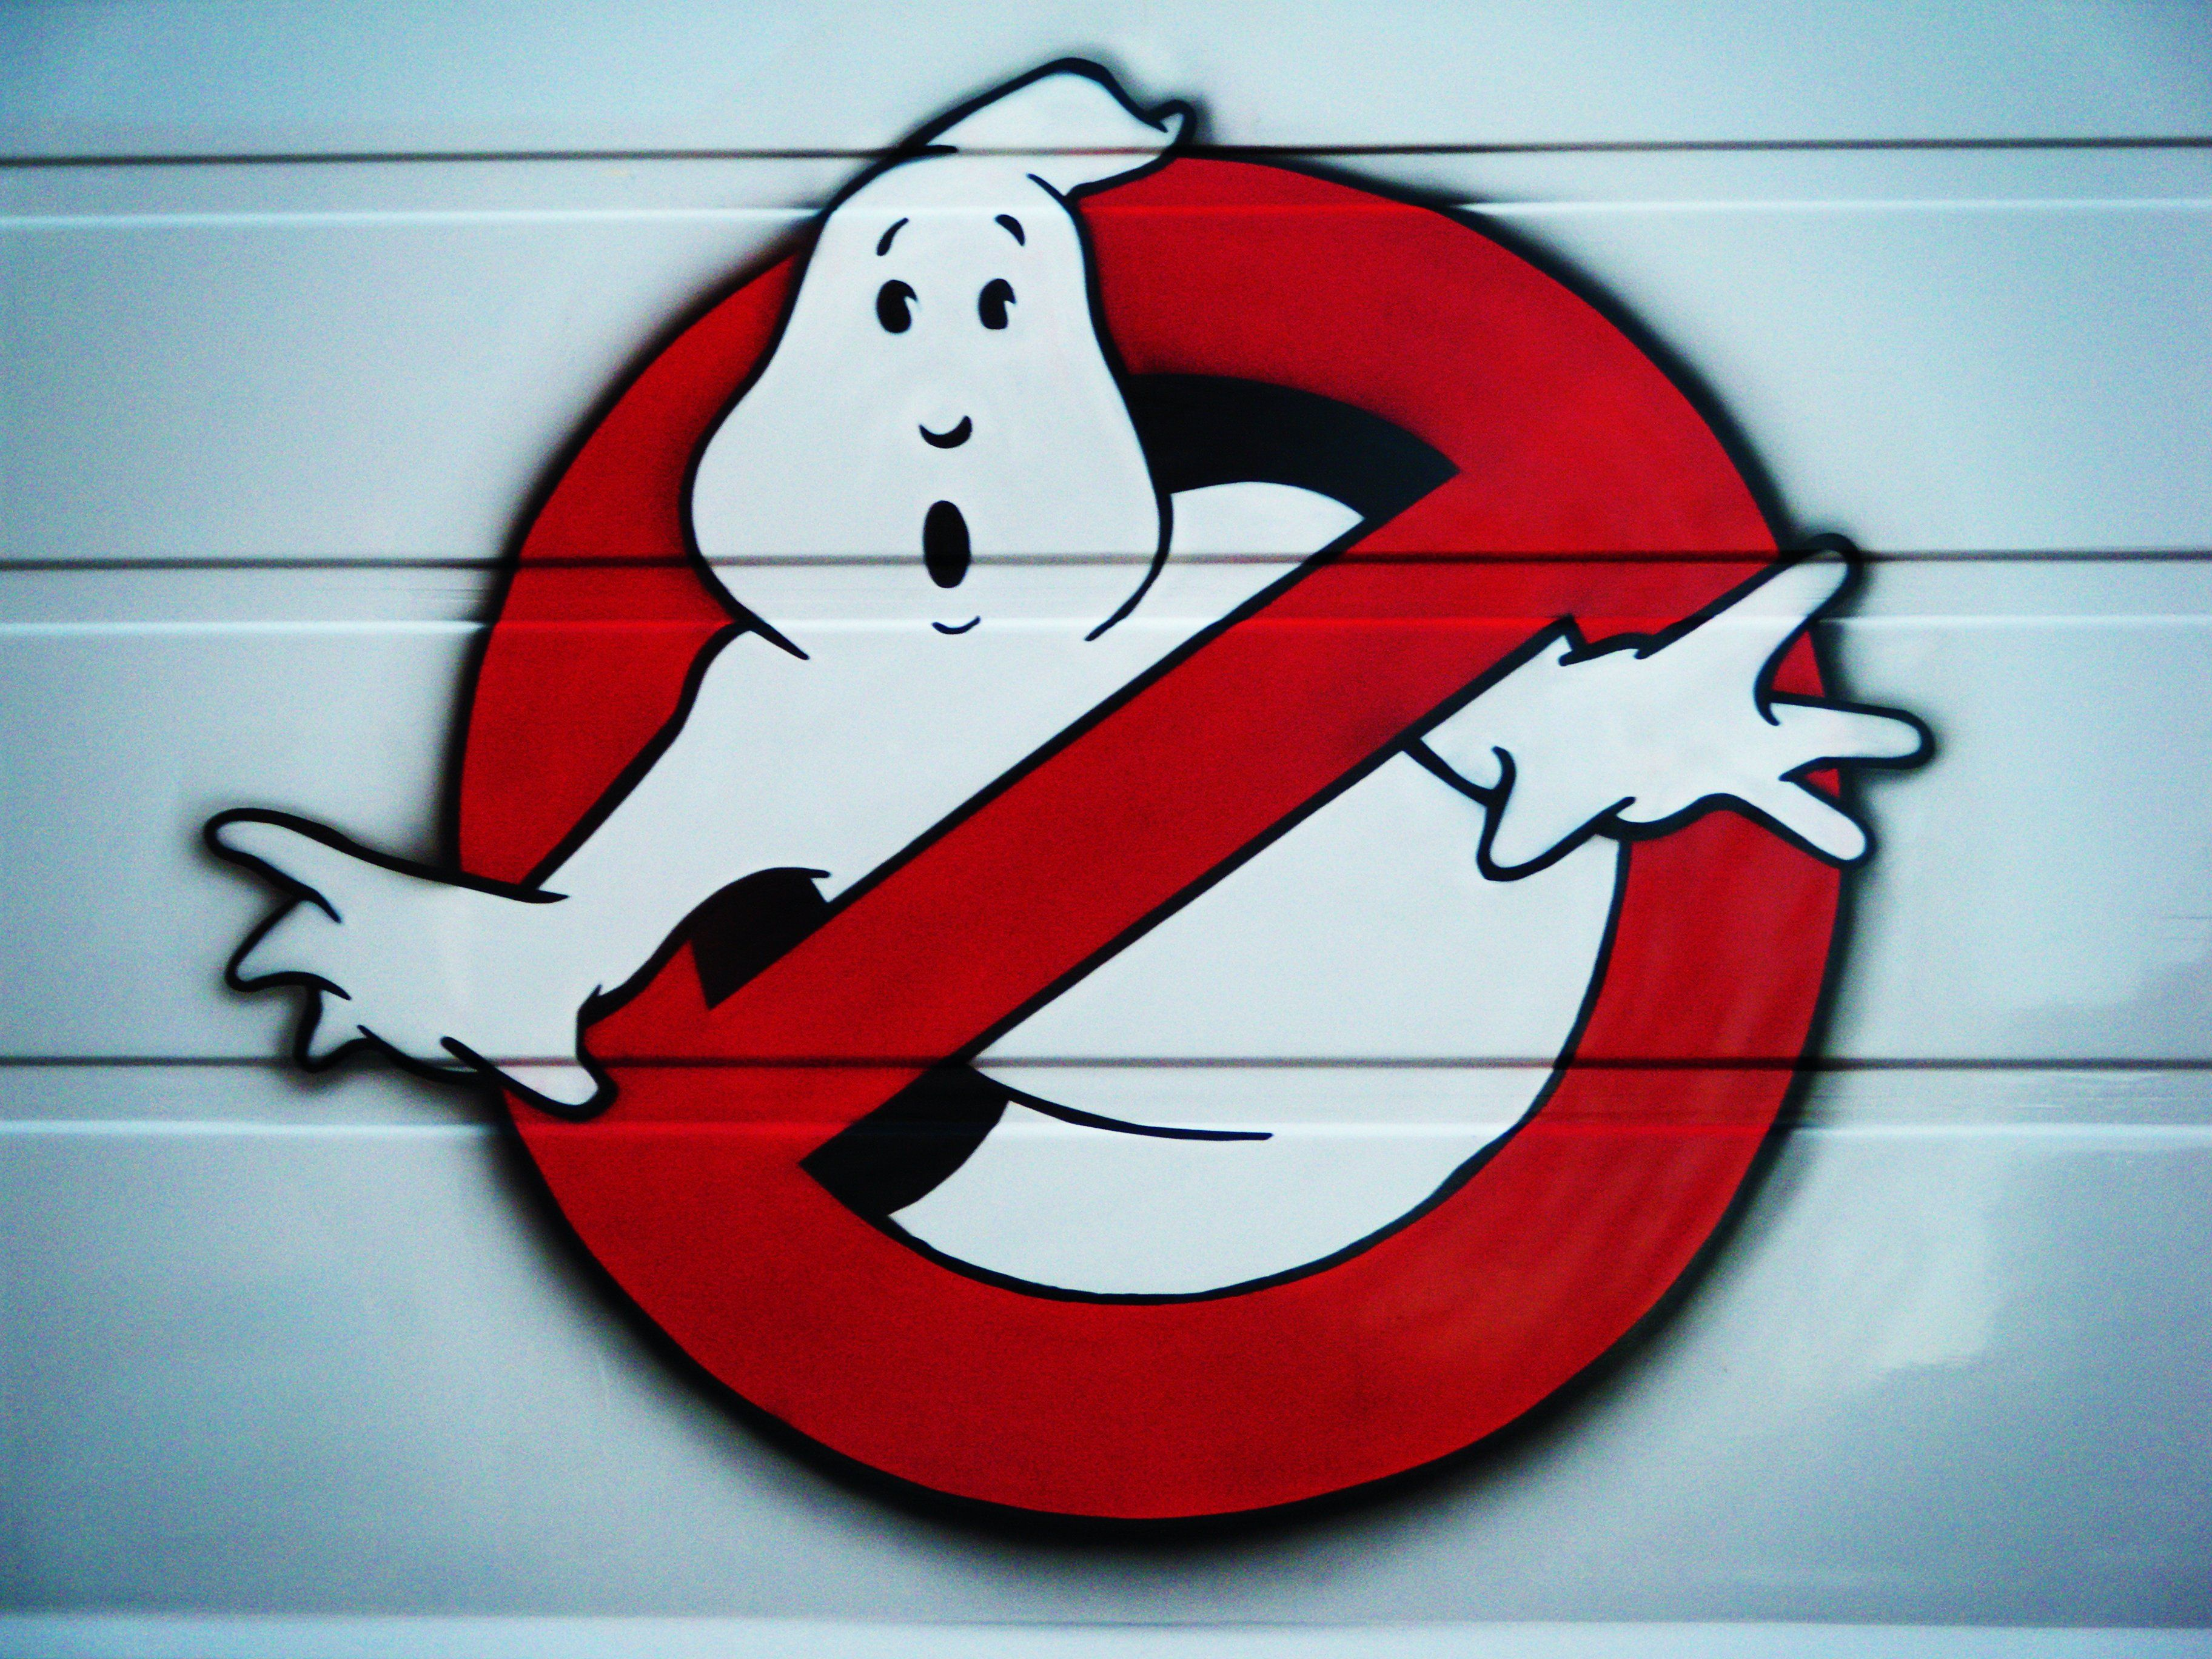 ghostbusters wallpapers picture | movies | pinterest | ghostbusters